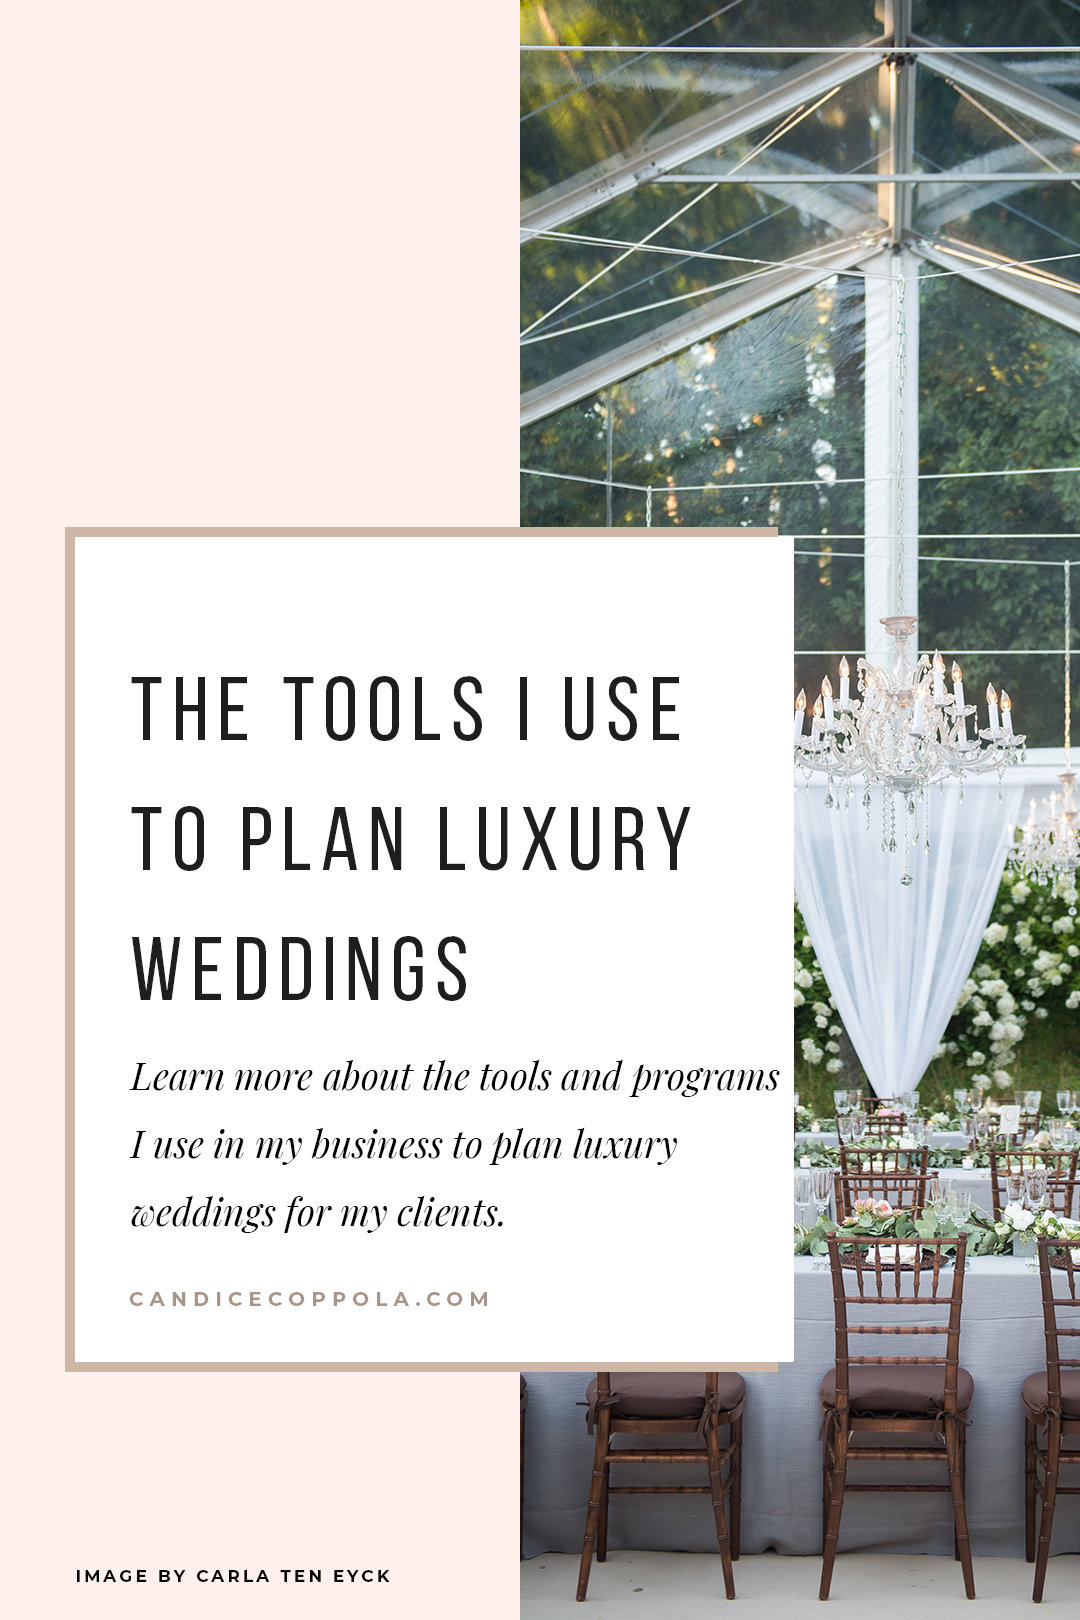 Are you searching for the right tools to run your wedding planning business? Learn more about the tools I used to plan luxury weddings for my clients, and receive special discounts and freebies! #weddingplannerbiz #businesstools